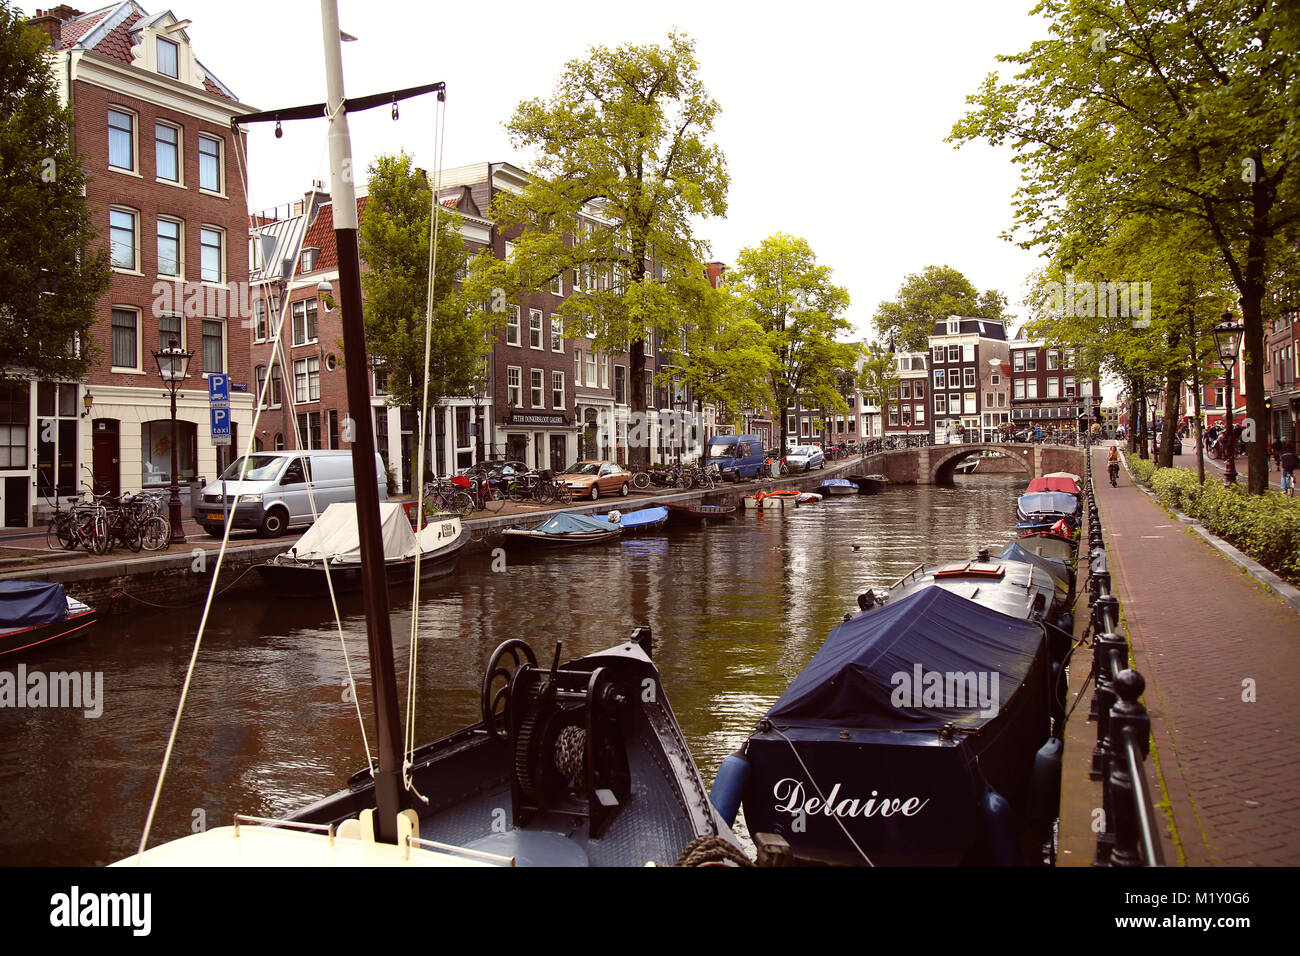 AMSTERDAM, THE NETHERLANDS - AUGUST 18, 2015: View on Prinsengracht from Spiegelgracht. Street life, Canal, bicycle - Stock Image